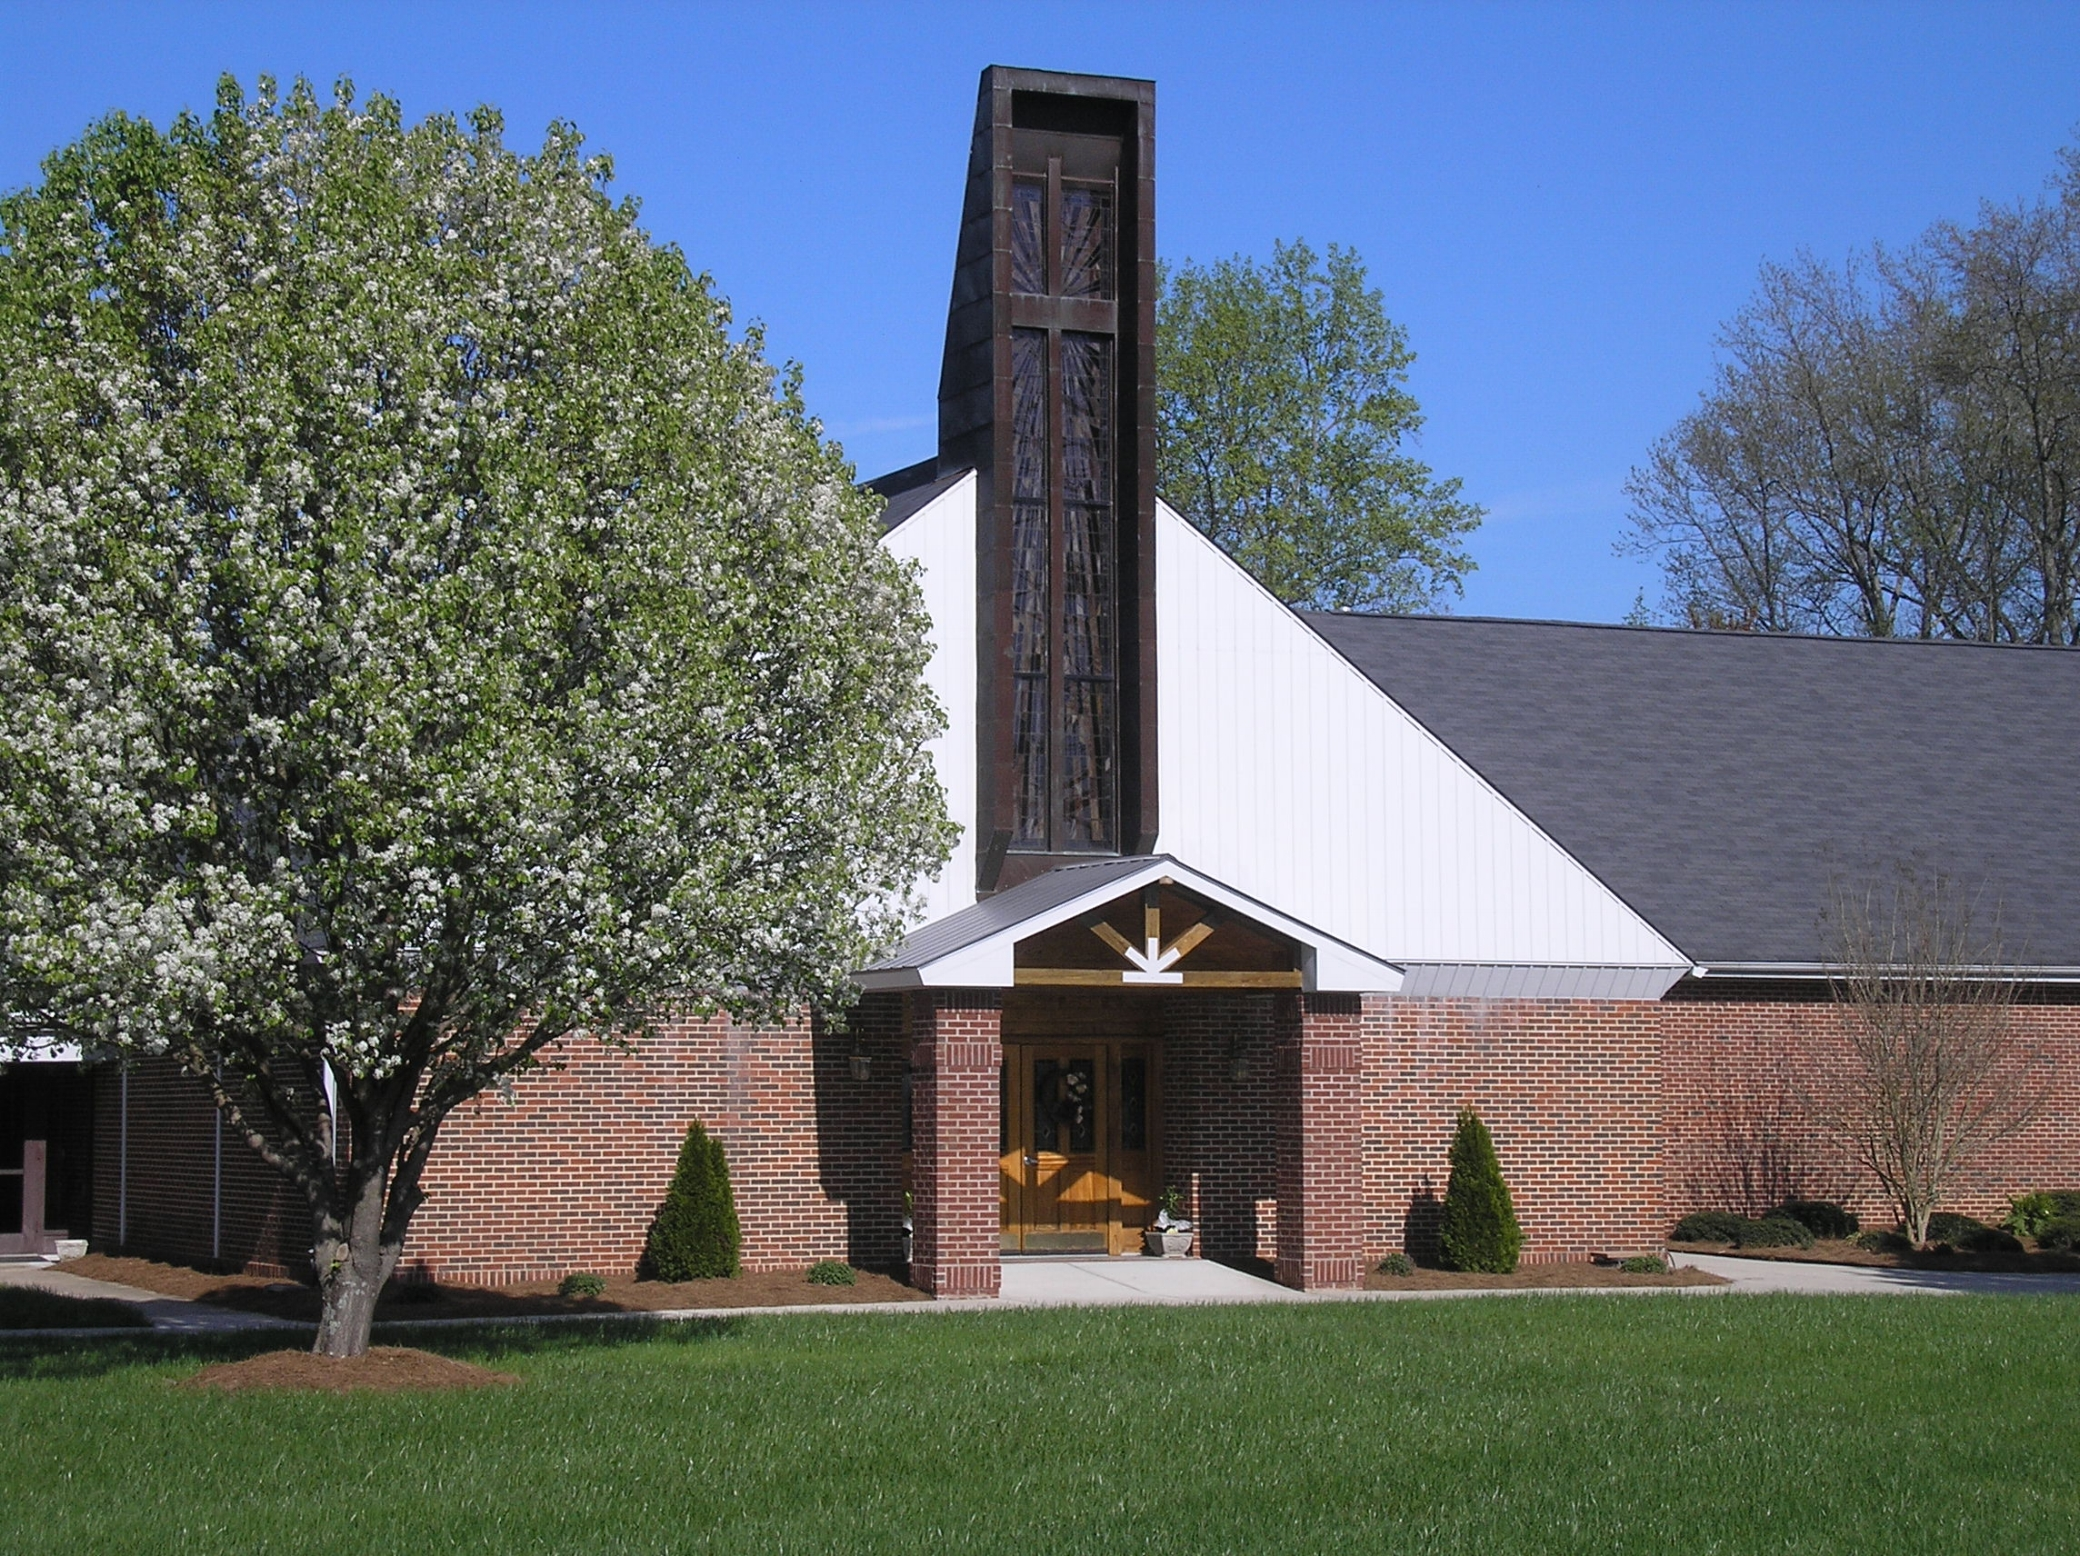 Our current church. Built in August 1, 1971 and the first service was held January 23, 1972 to present.